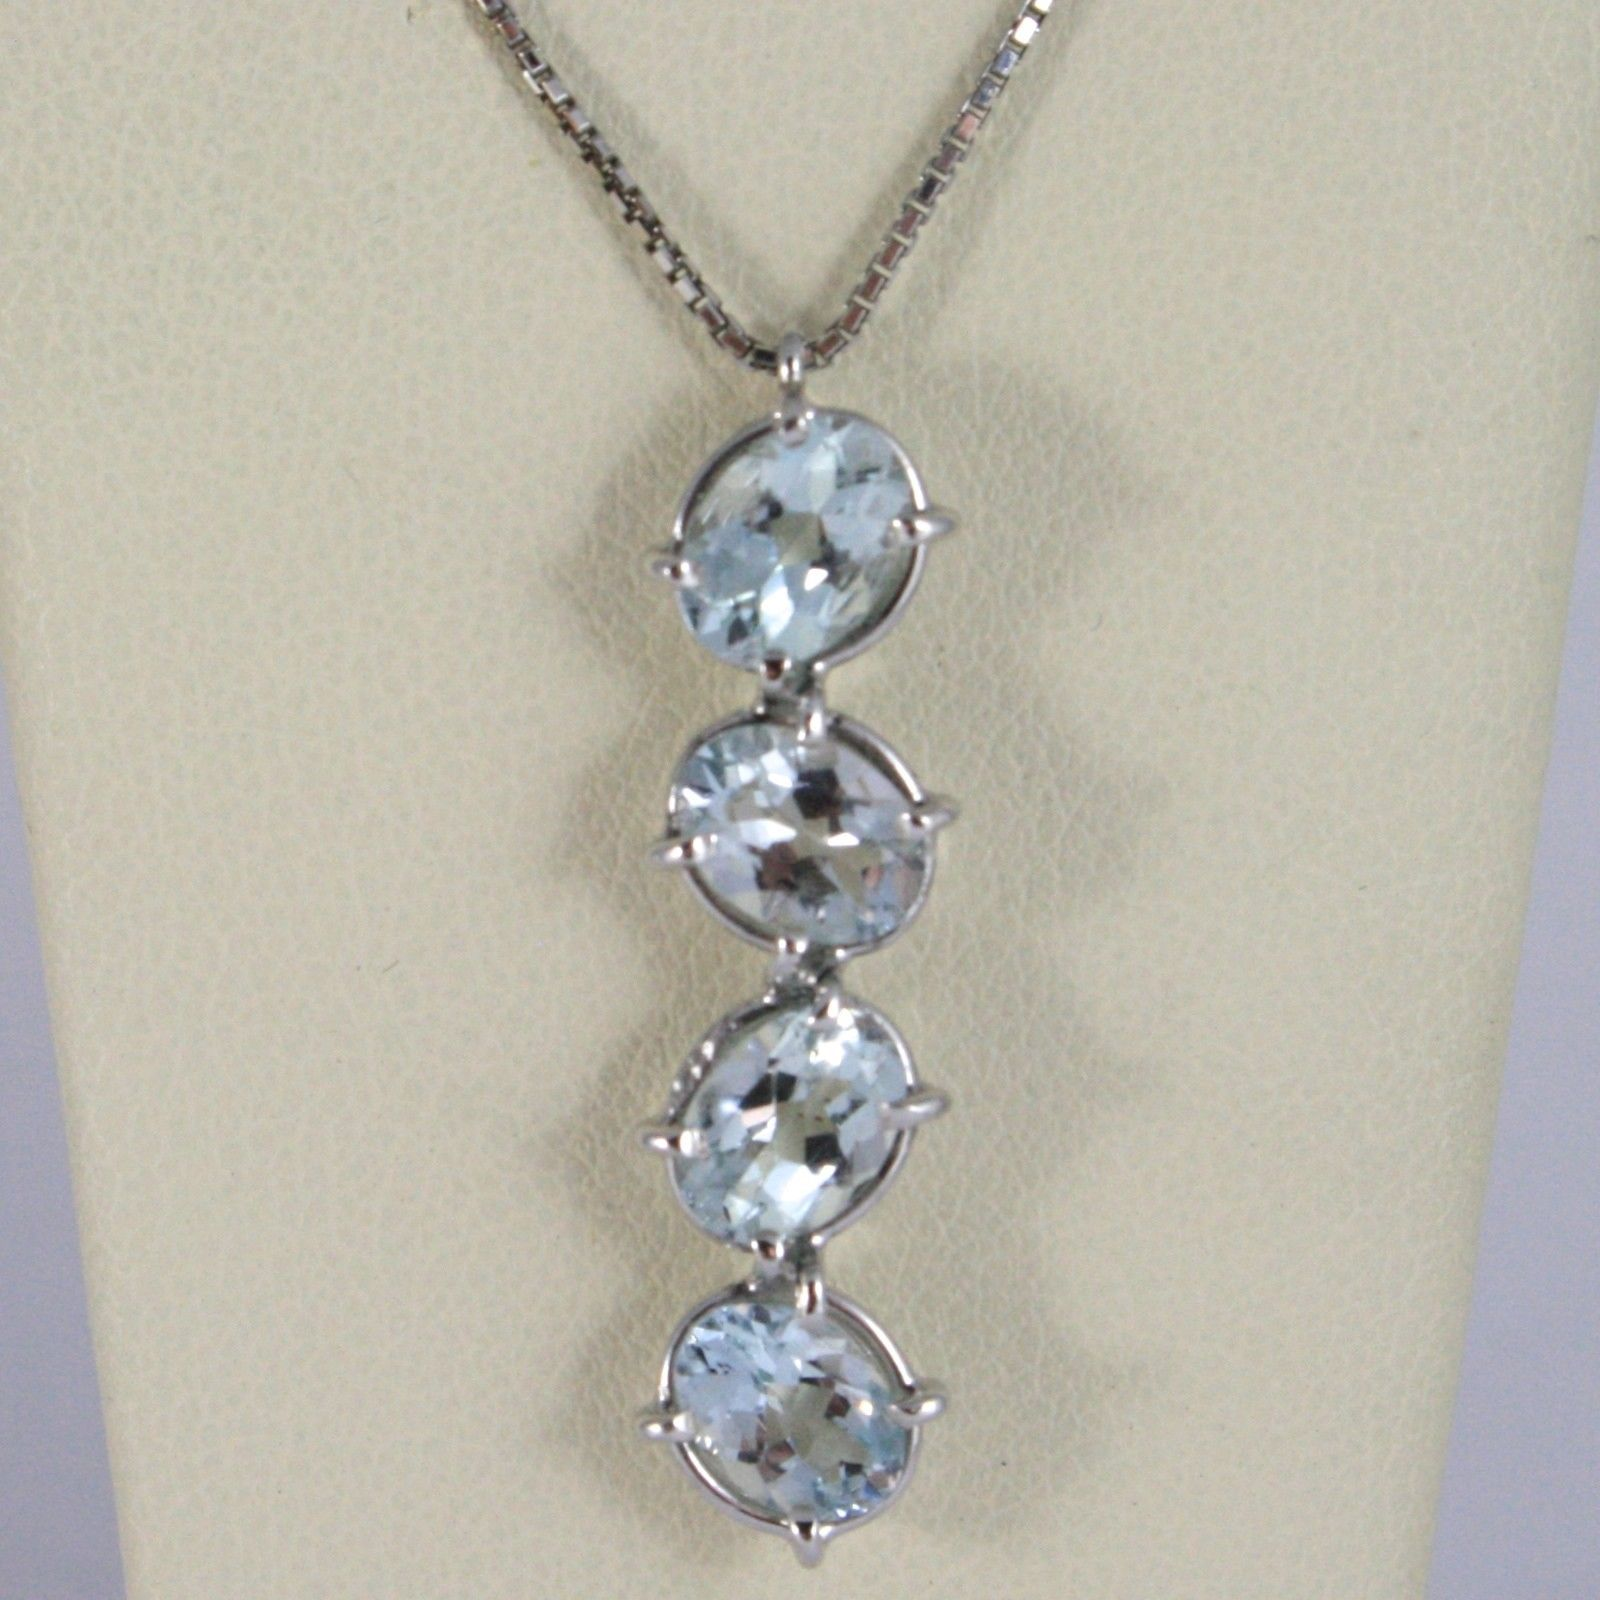 NECKLACE WHITE GOLD 750 18K,PENDANT 4 AQUAMARINES OVALS CT 3.20 CHAIN VENETIAN